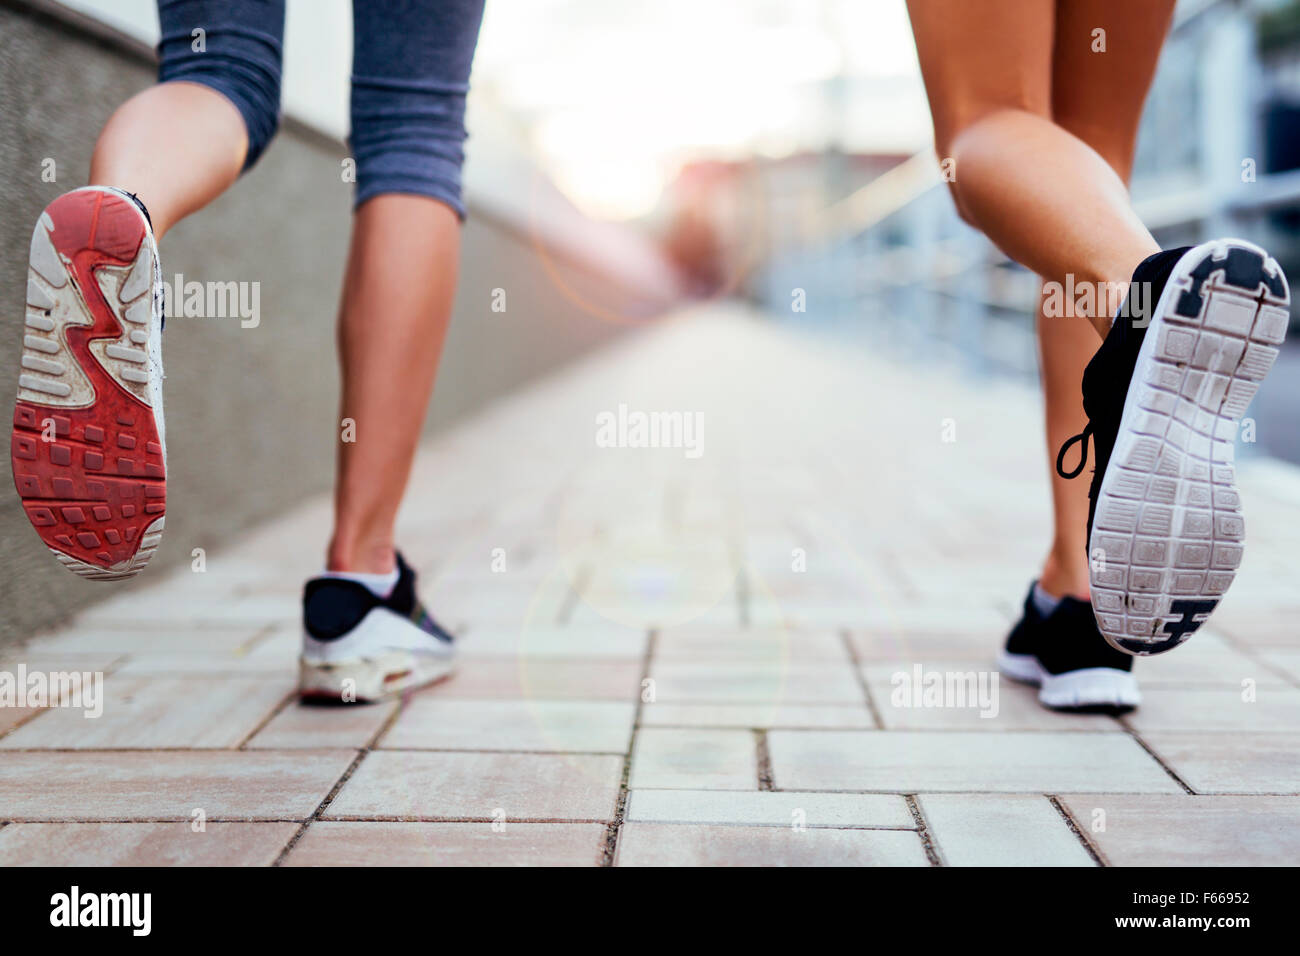 Closeup of joggers' feet and shoes while in motion - Stock Image